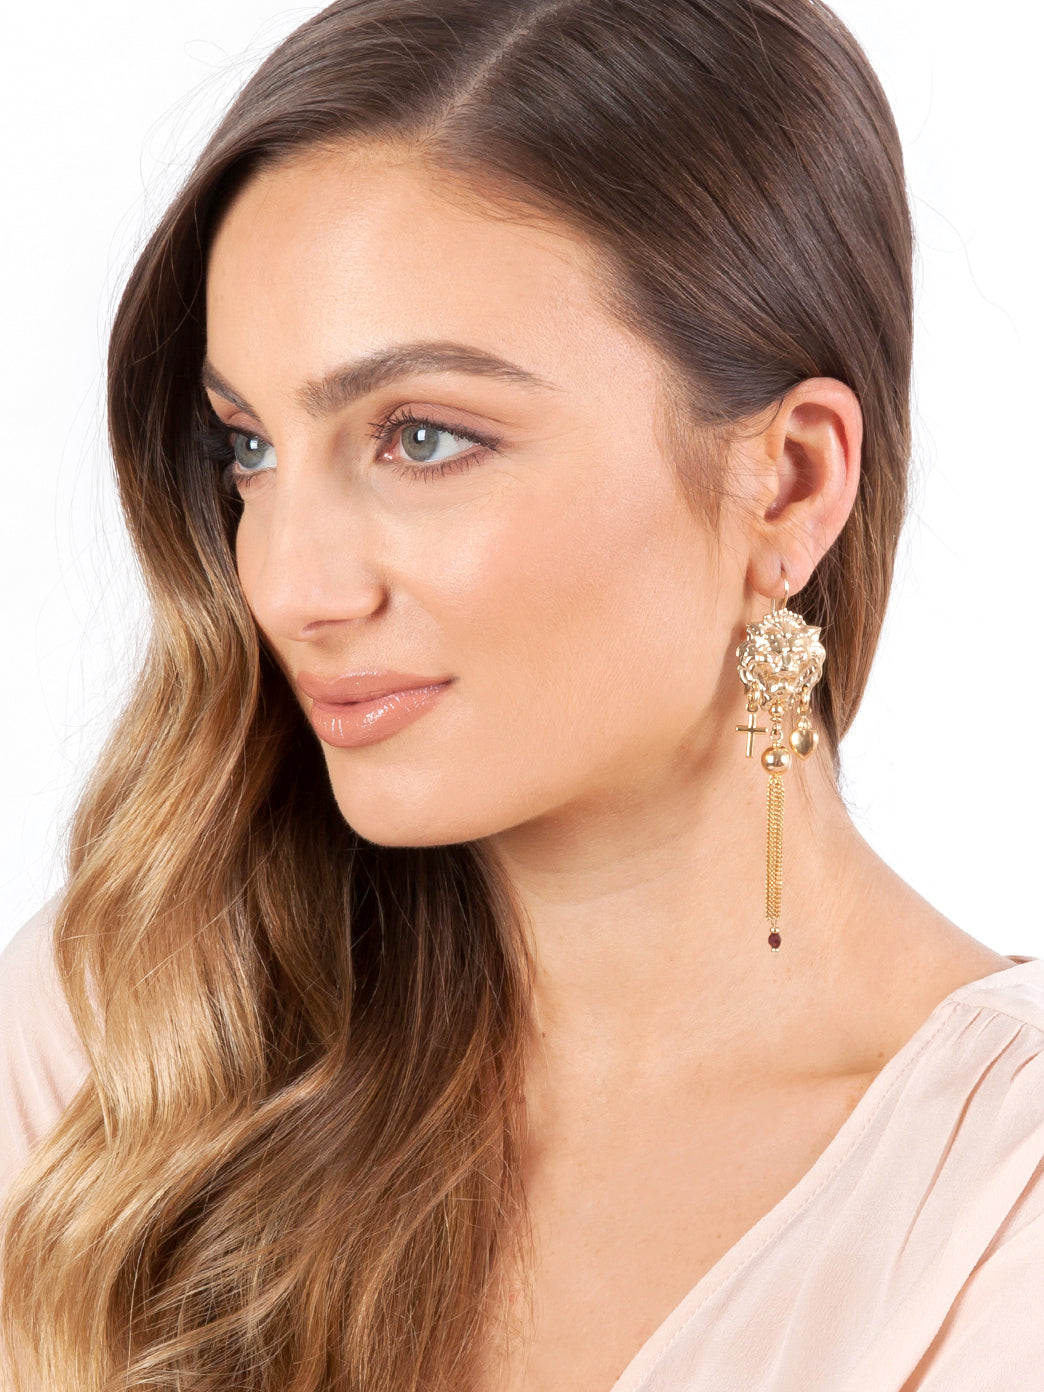 Fiorina Jewellery Gold Carita Tassel Earrings Model